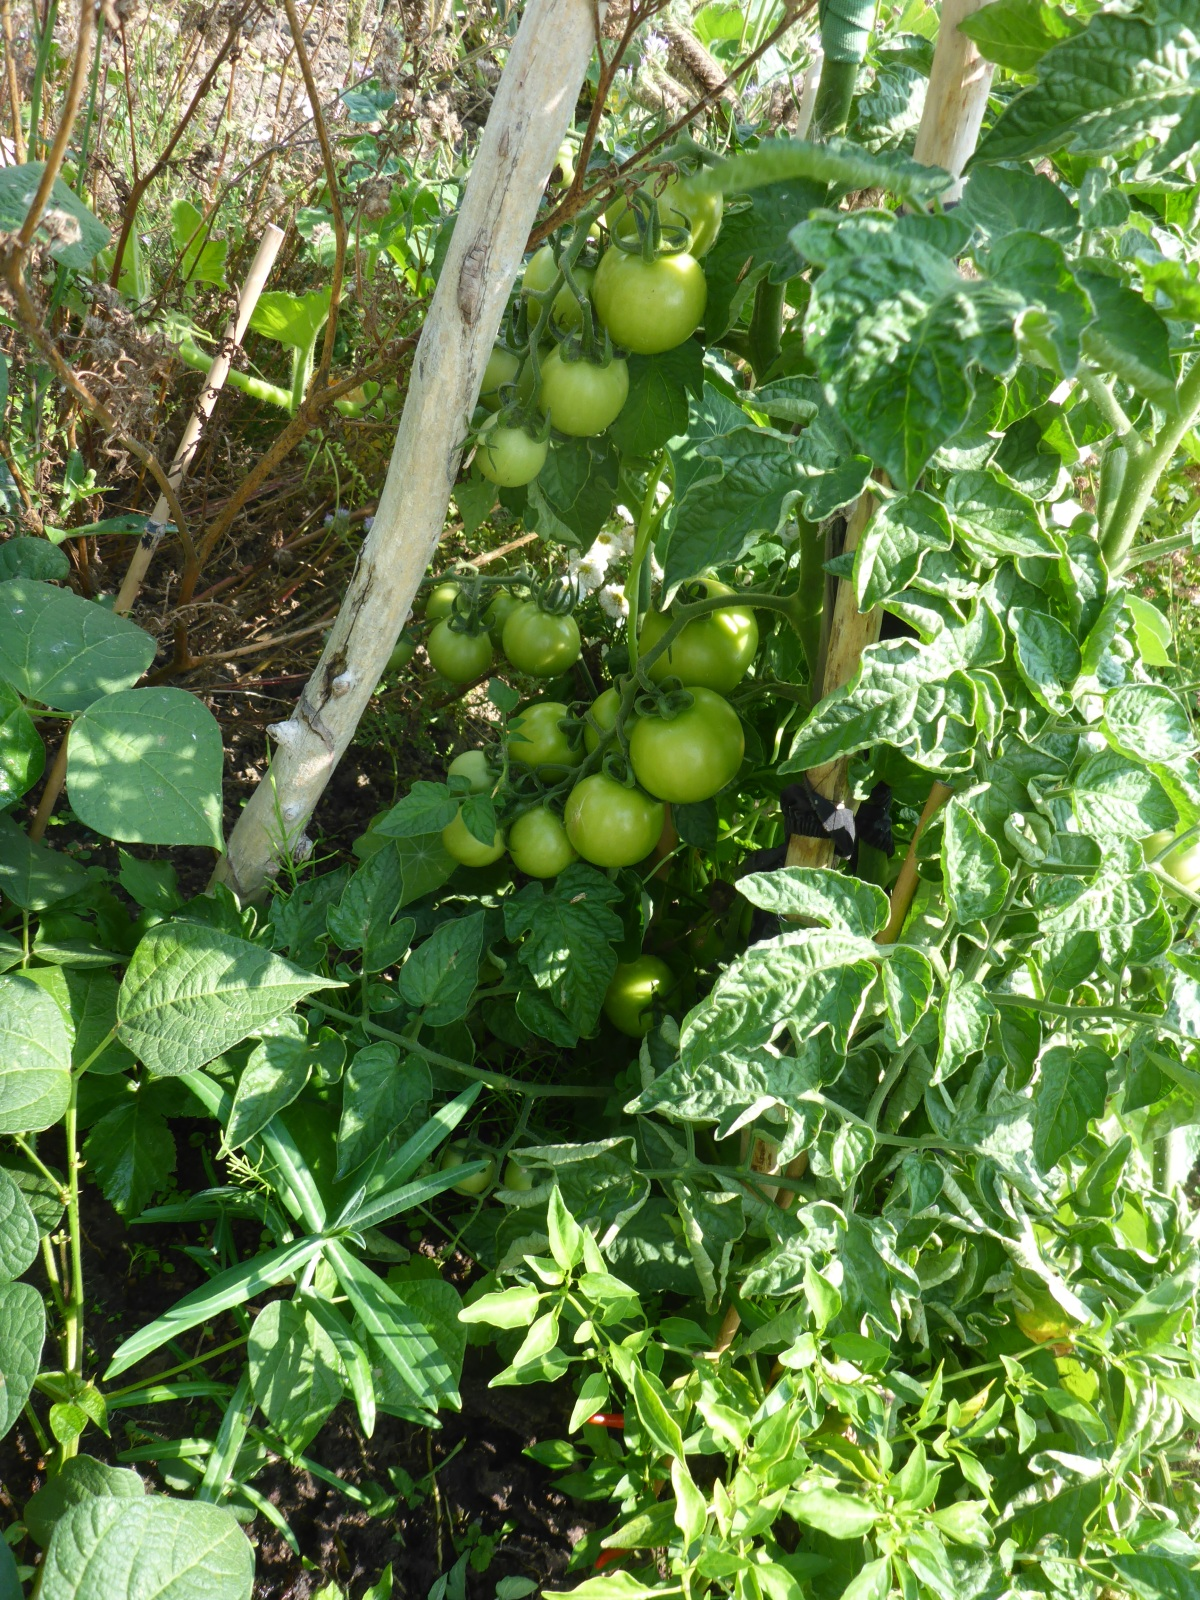 Tomatoes in hiding